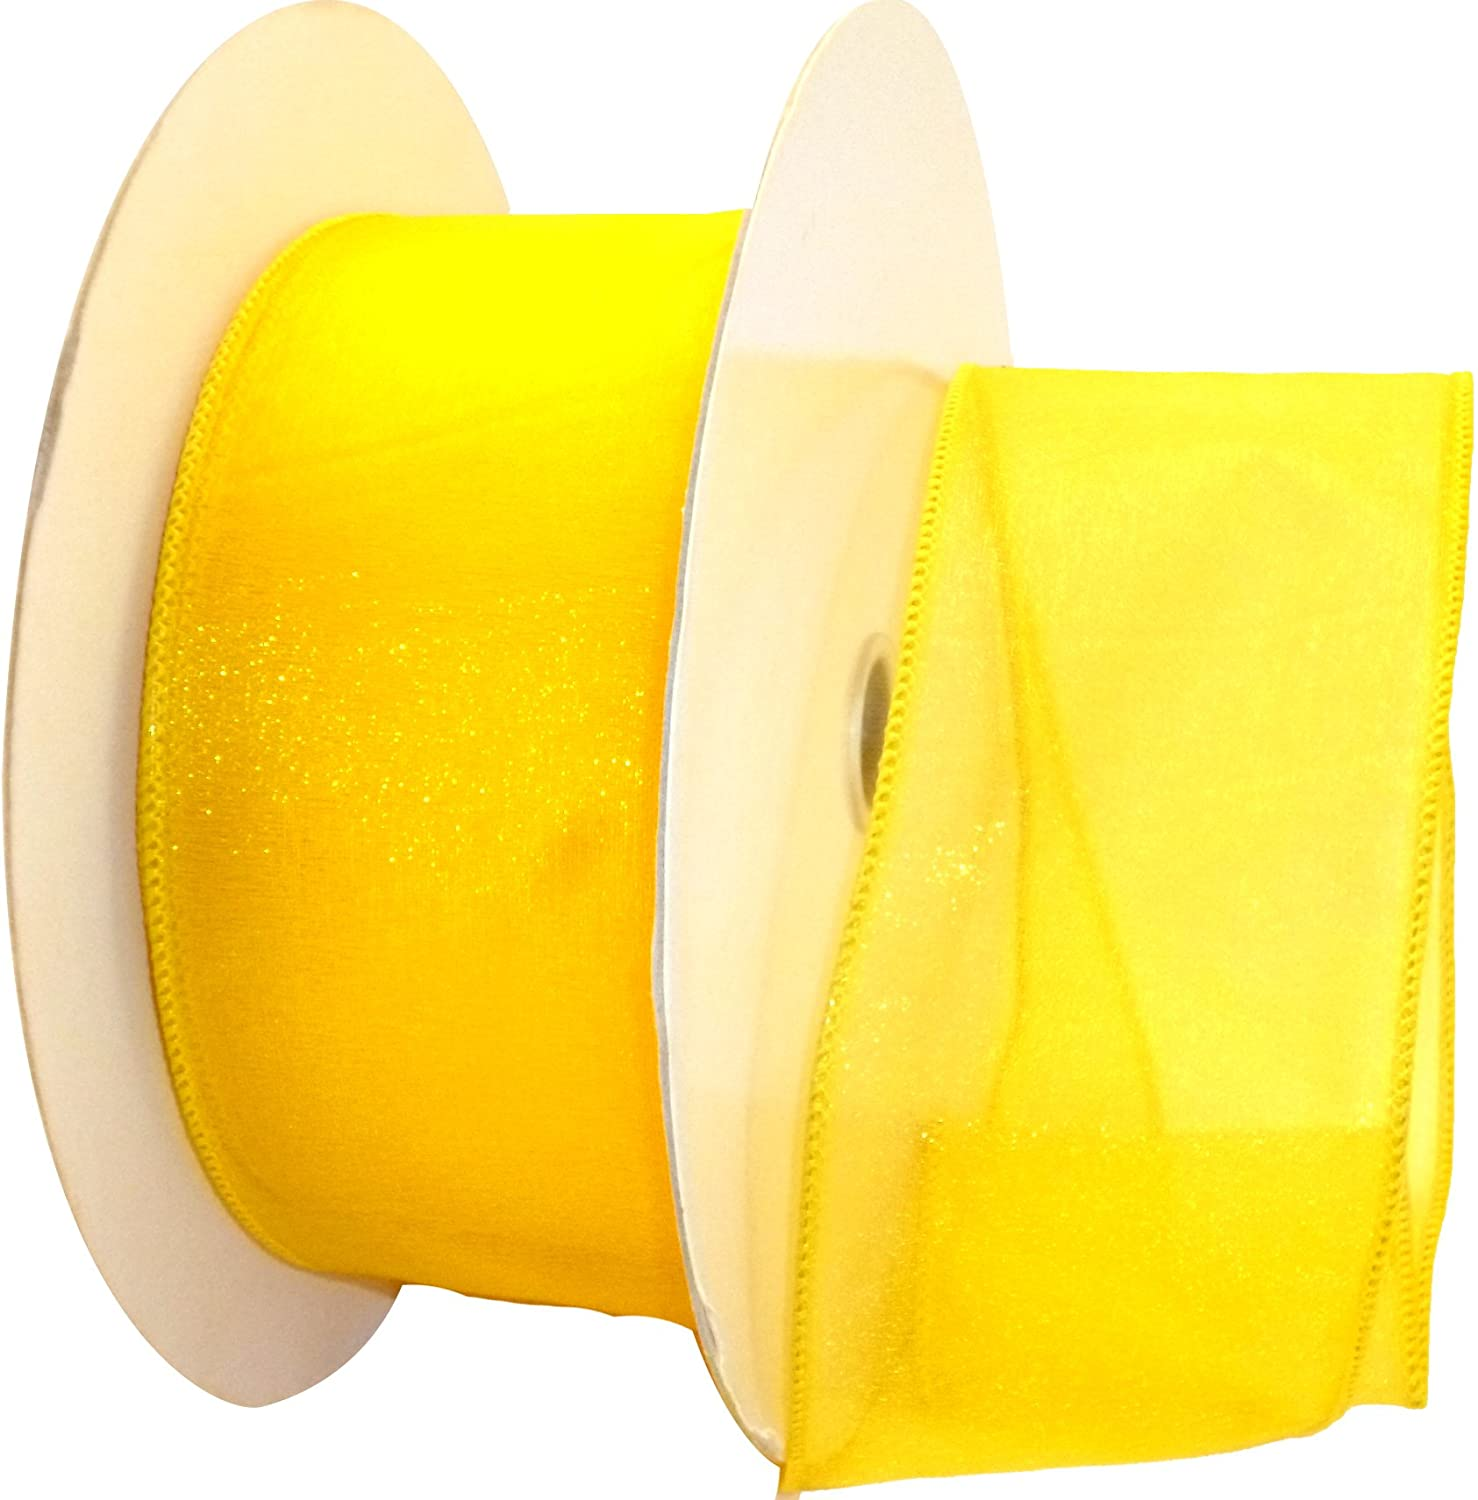 Reliant Ribbon 99908W-079-40K Sheer Lovely Value Wired Edge Ribbon, 2-1/2 Inch X 50 Yards, Yellow